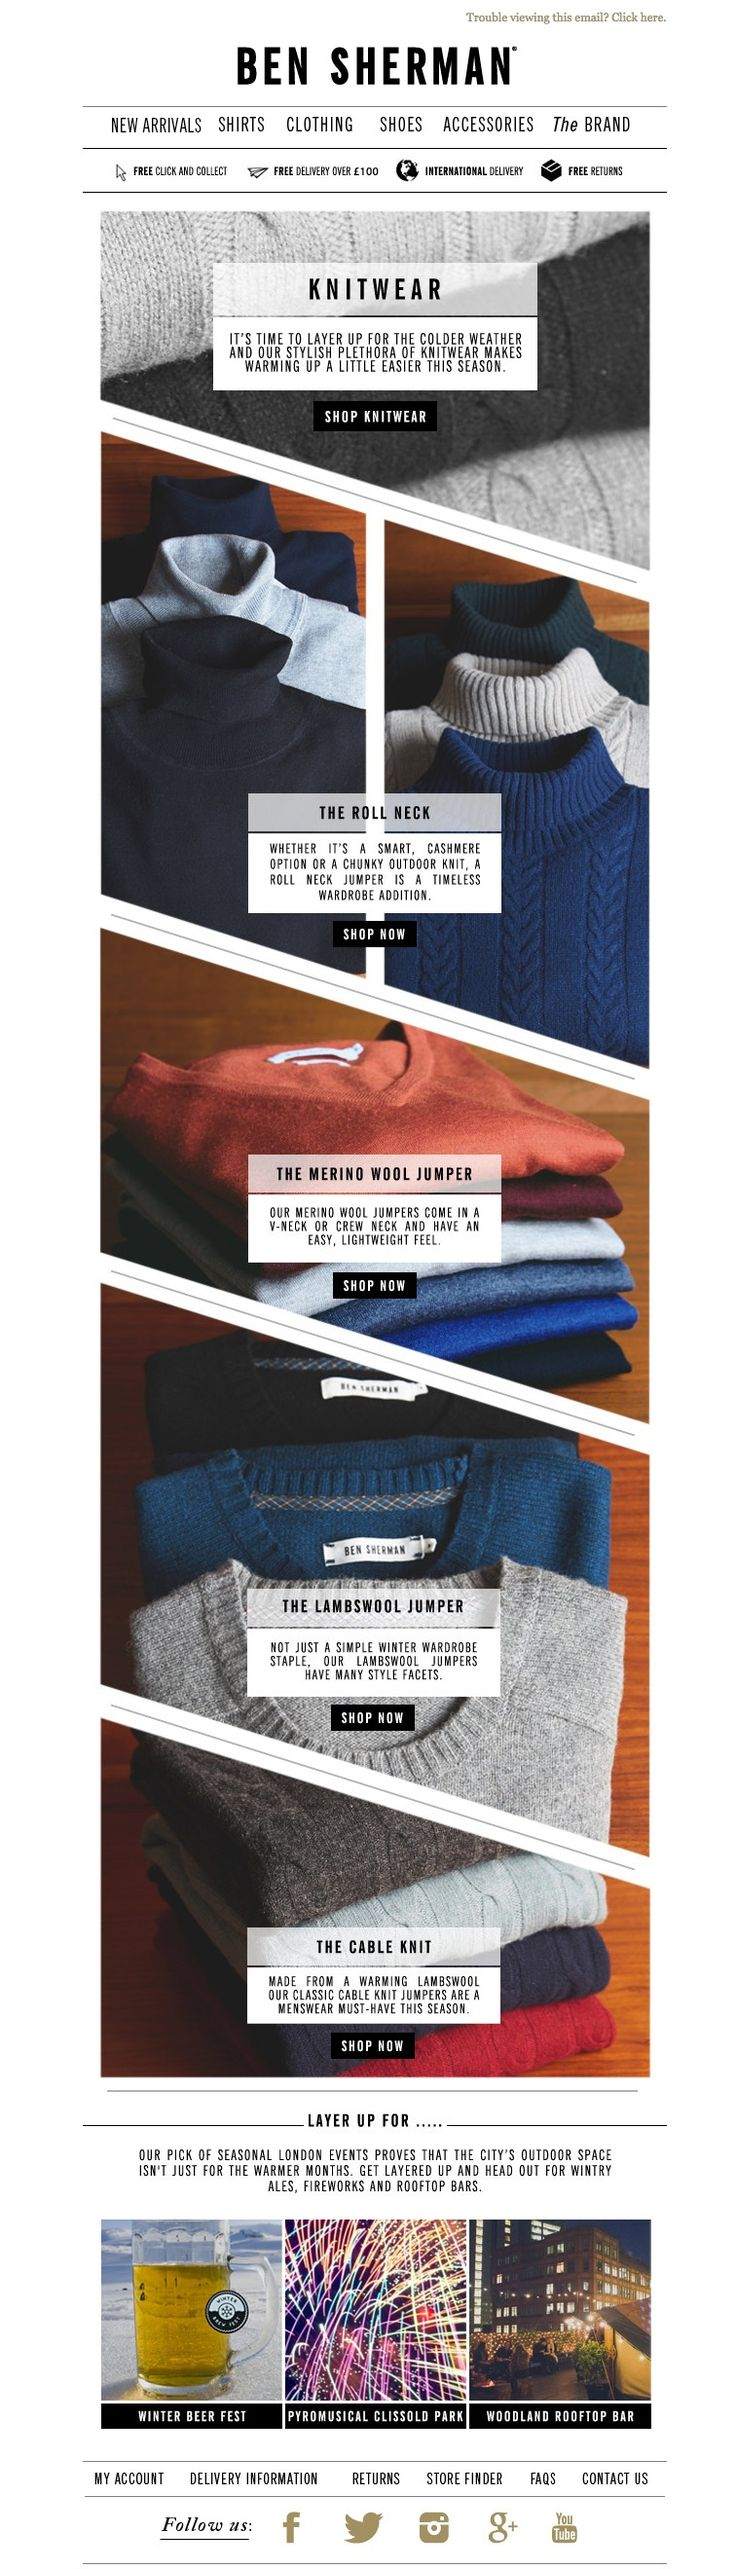 #newsletter Ben Sherman 11.2014 Feeling the chill? Reach for this season's knitwear